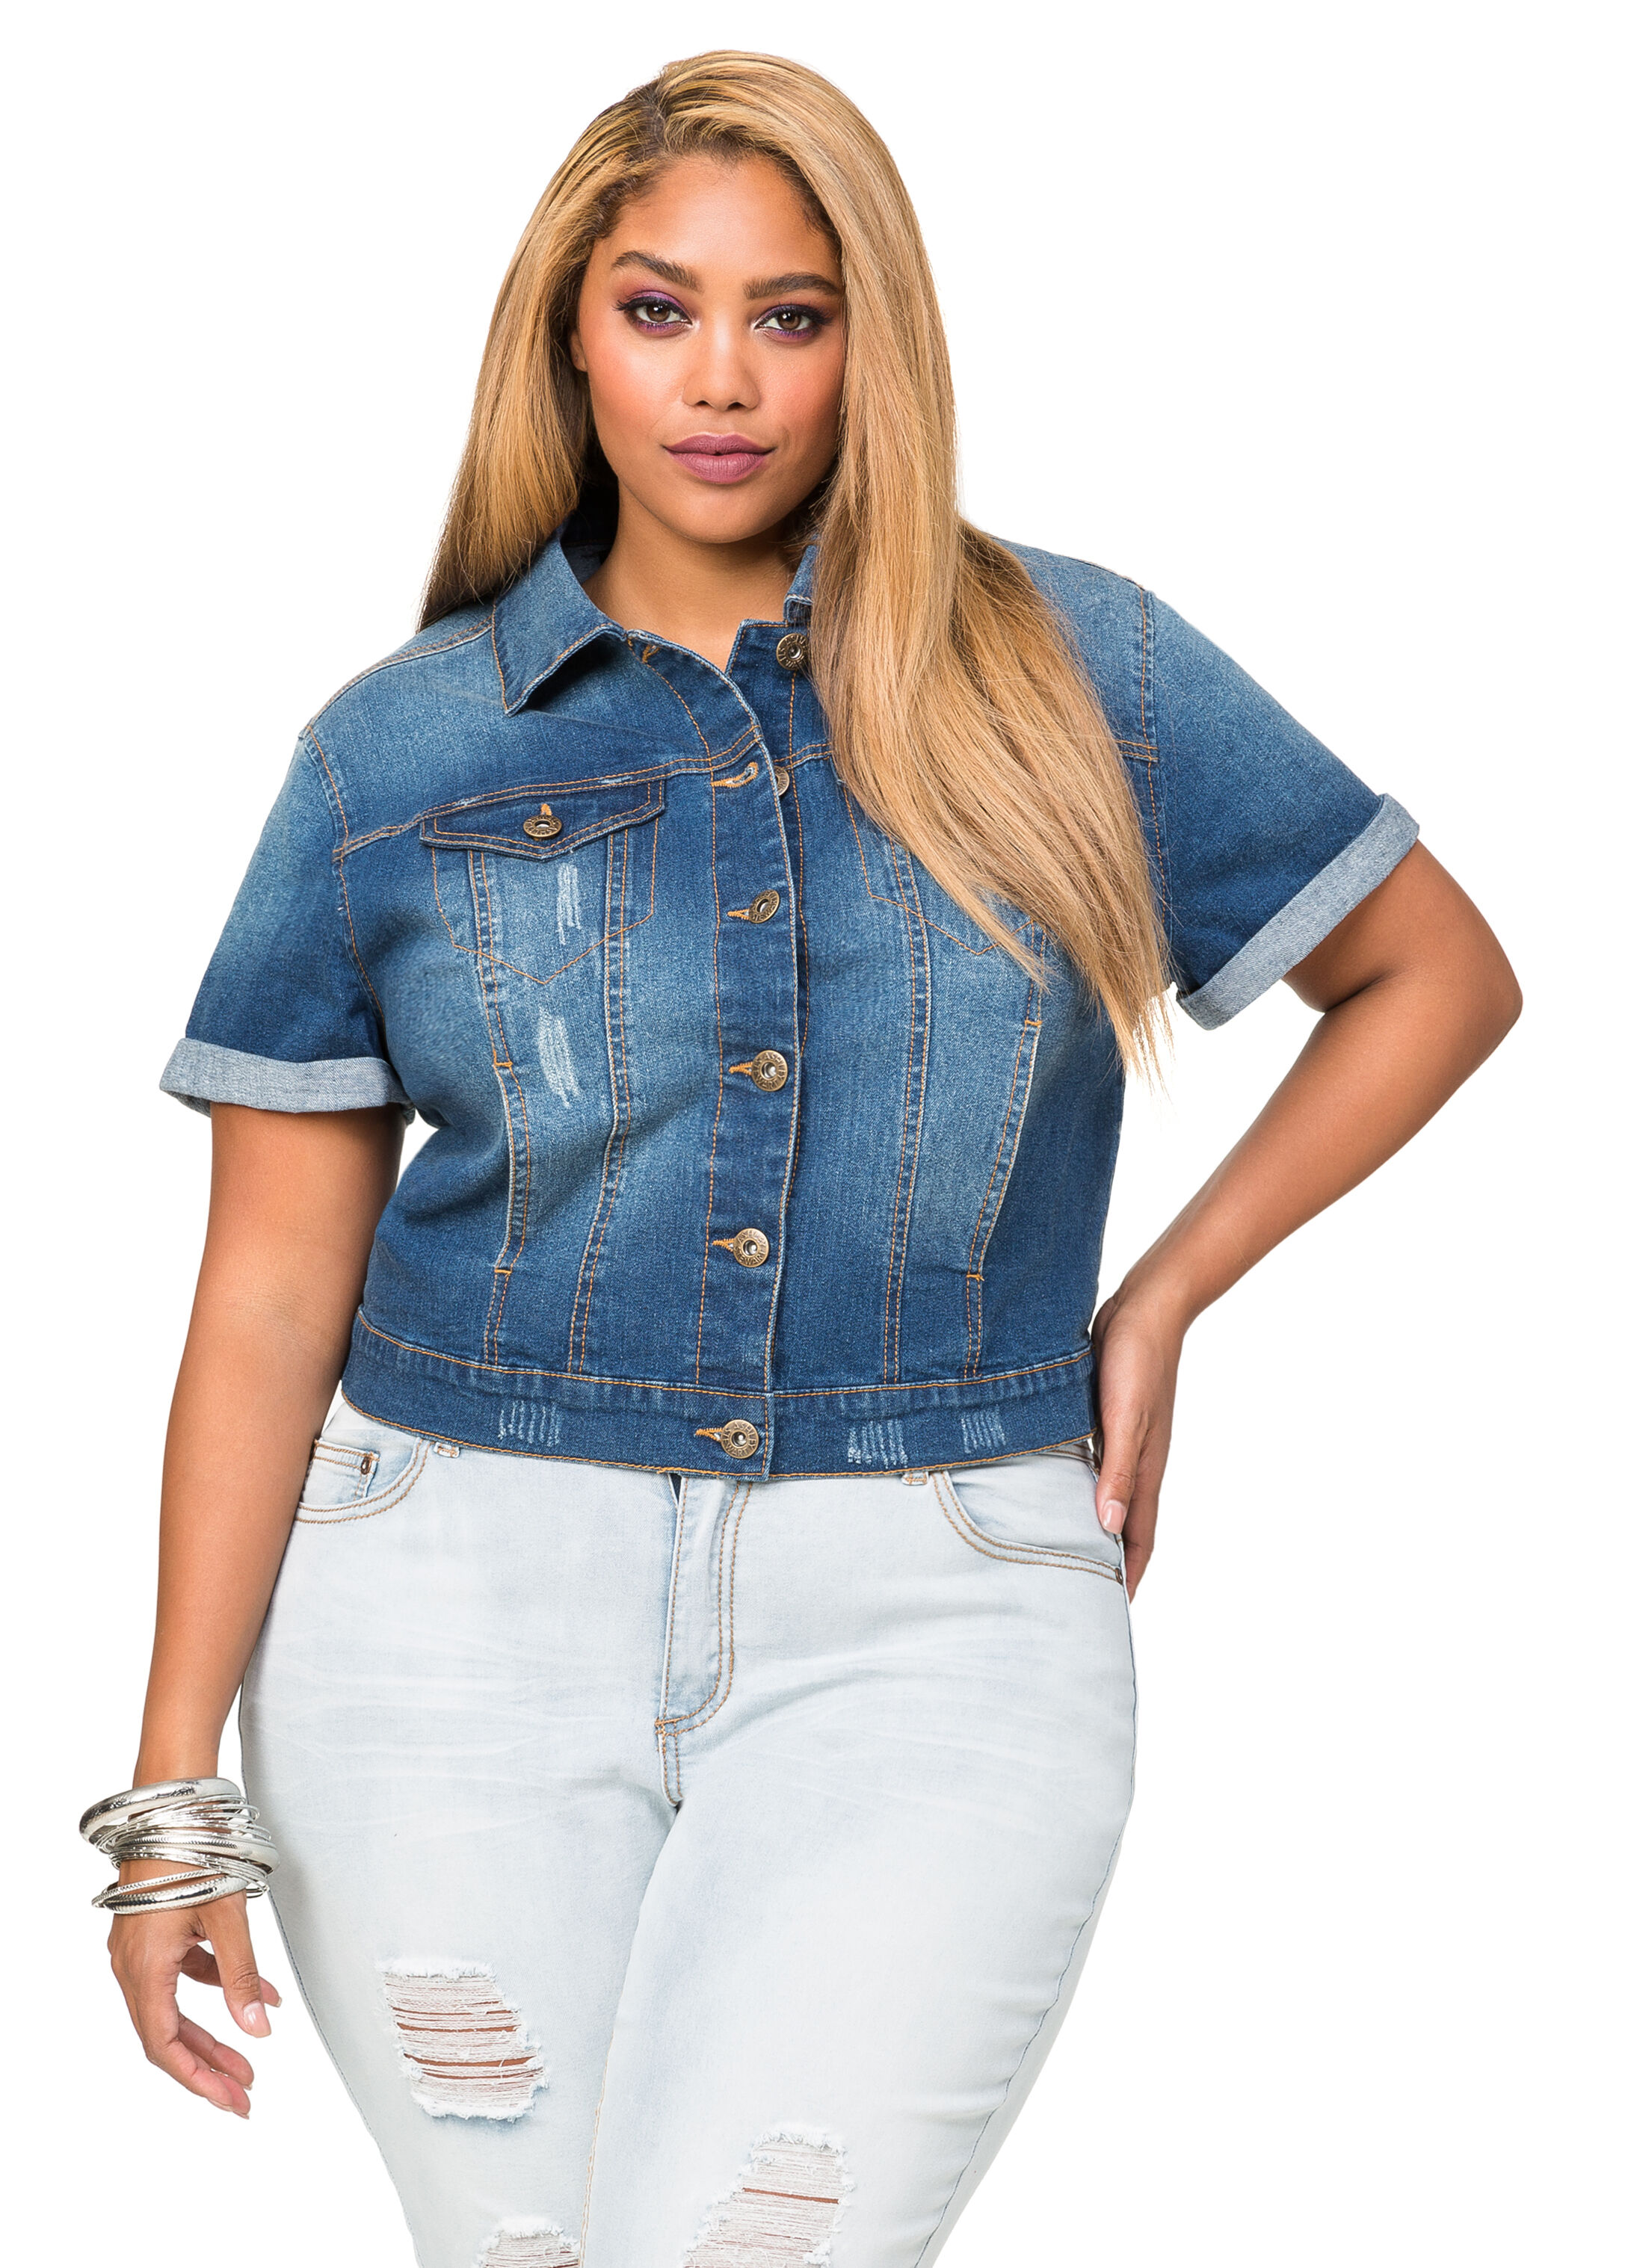 Short Sleeve Jean Jacket-Plus Size Denim-Ashley Stewart-034-7770X